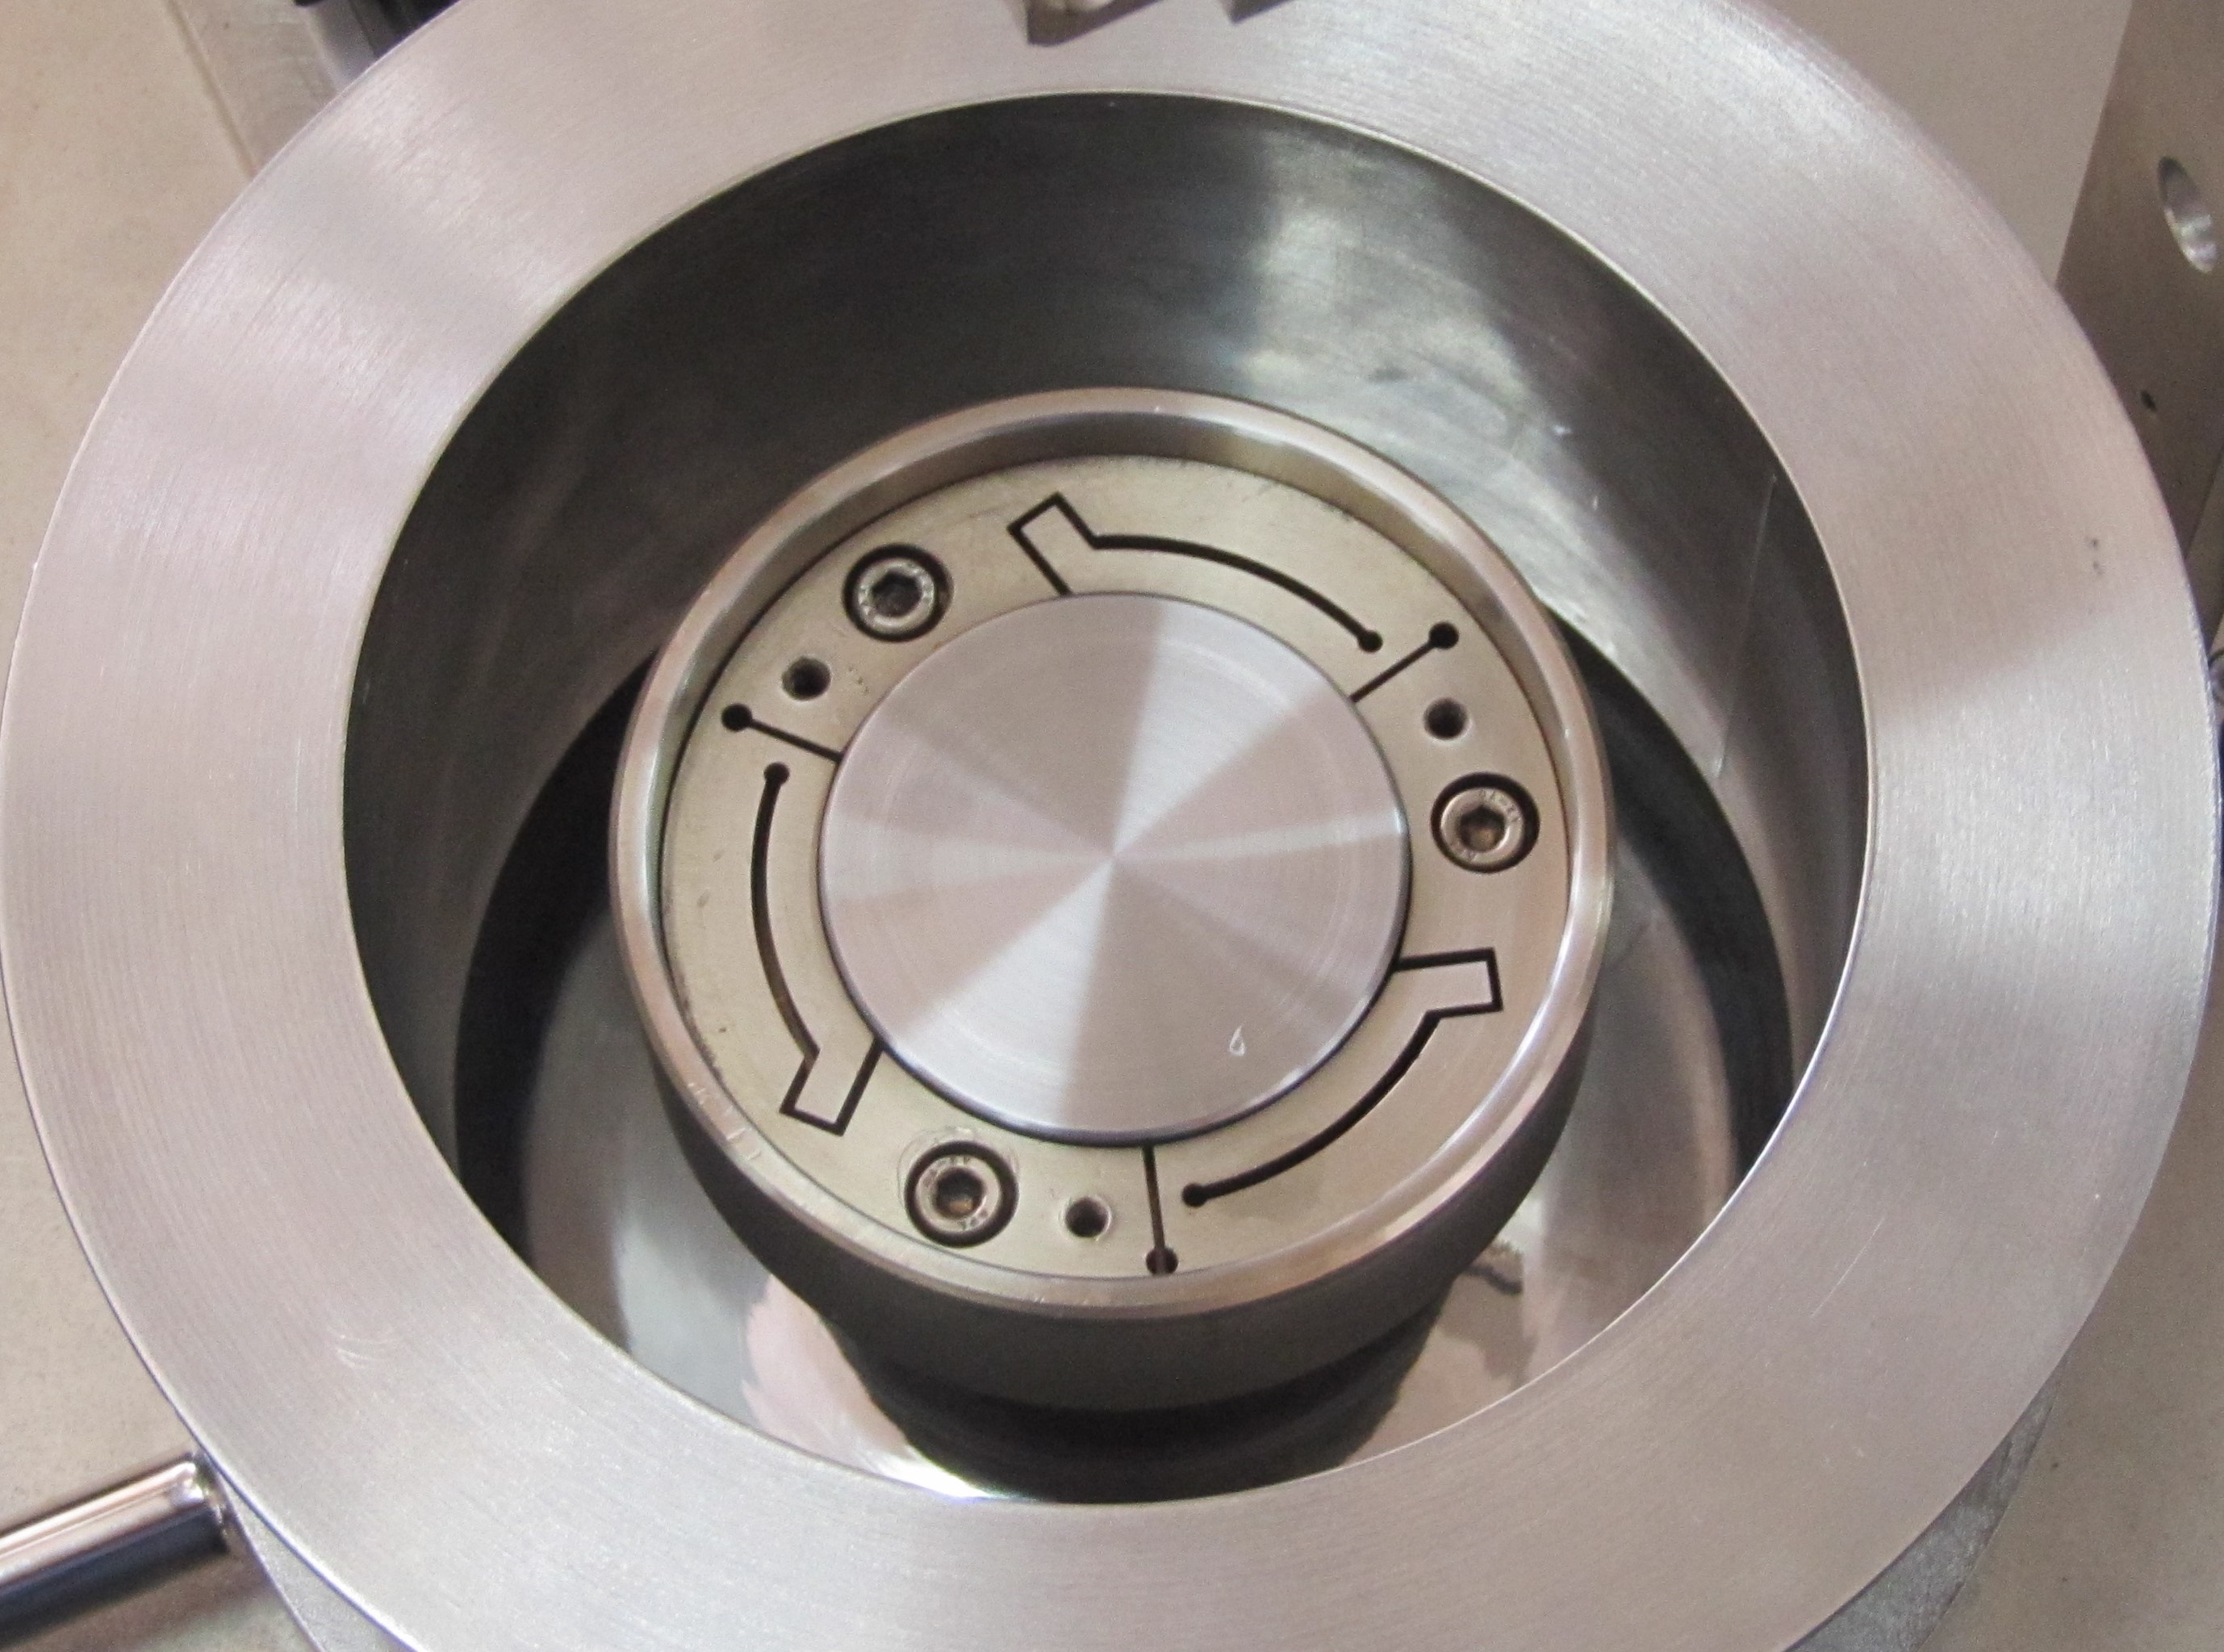 Ducom Instruments - Rotary Module